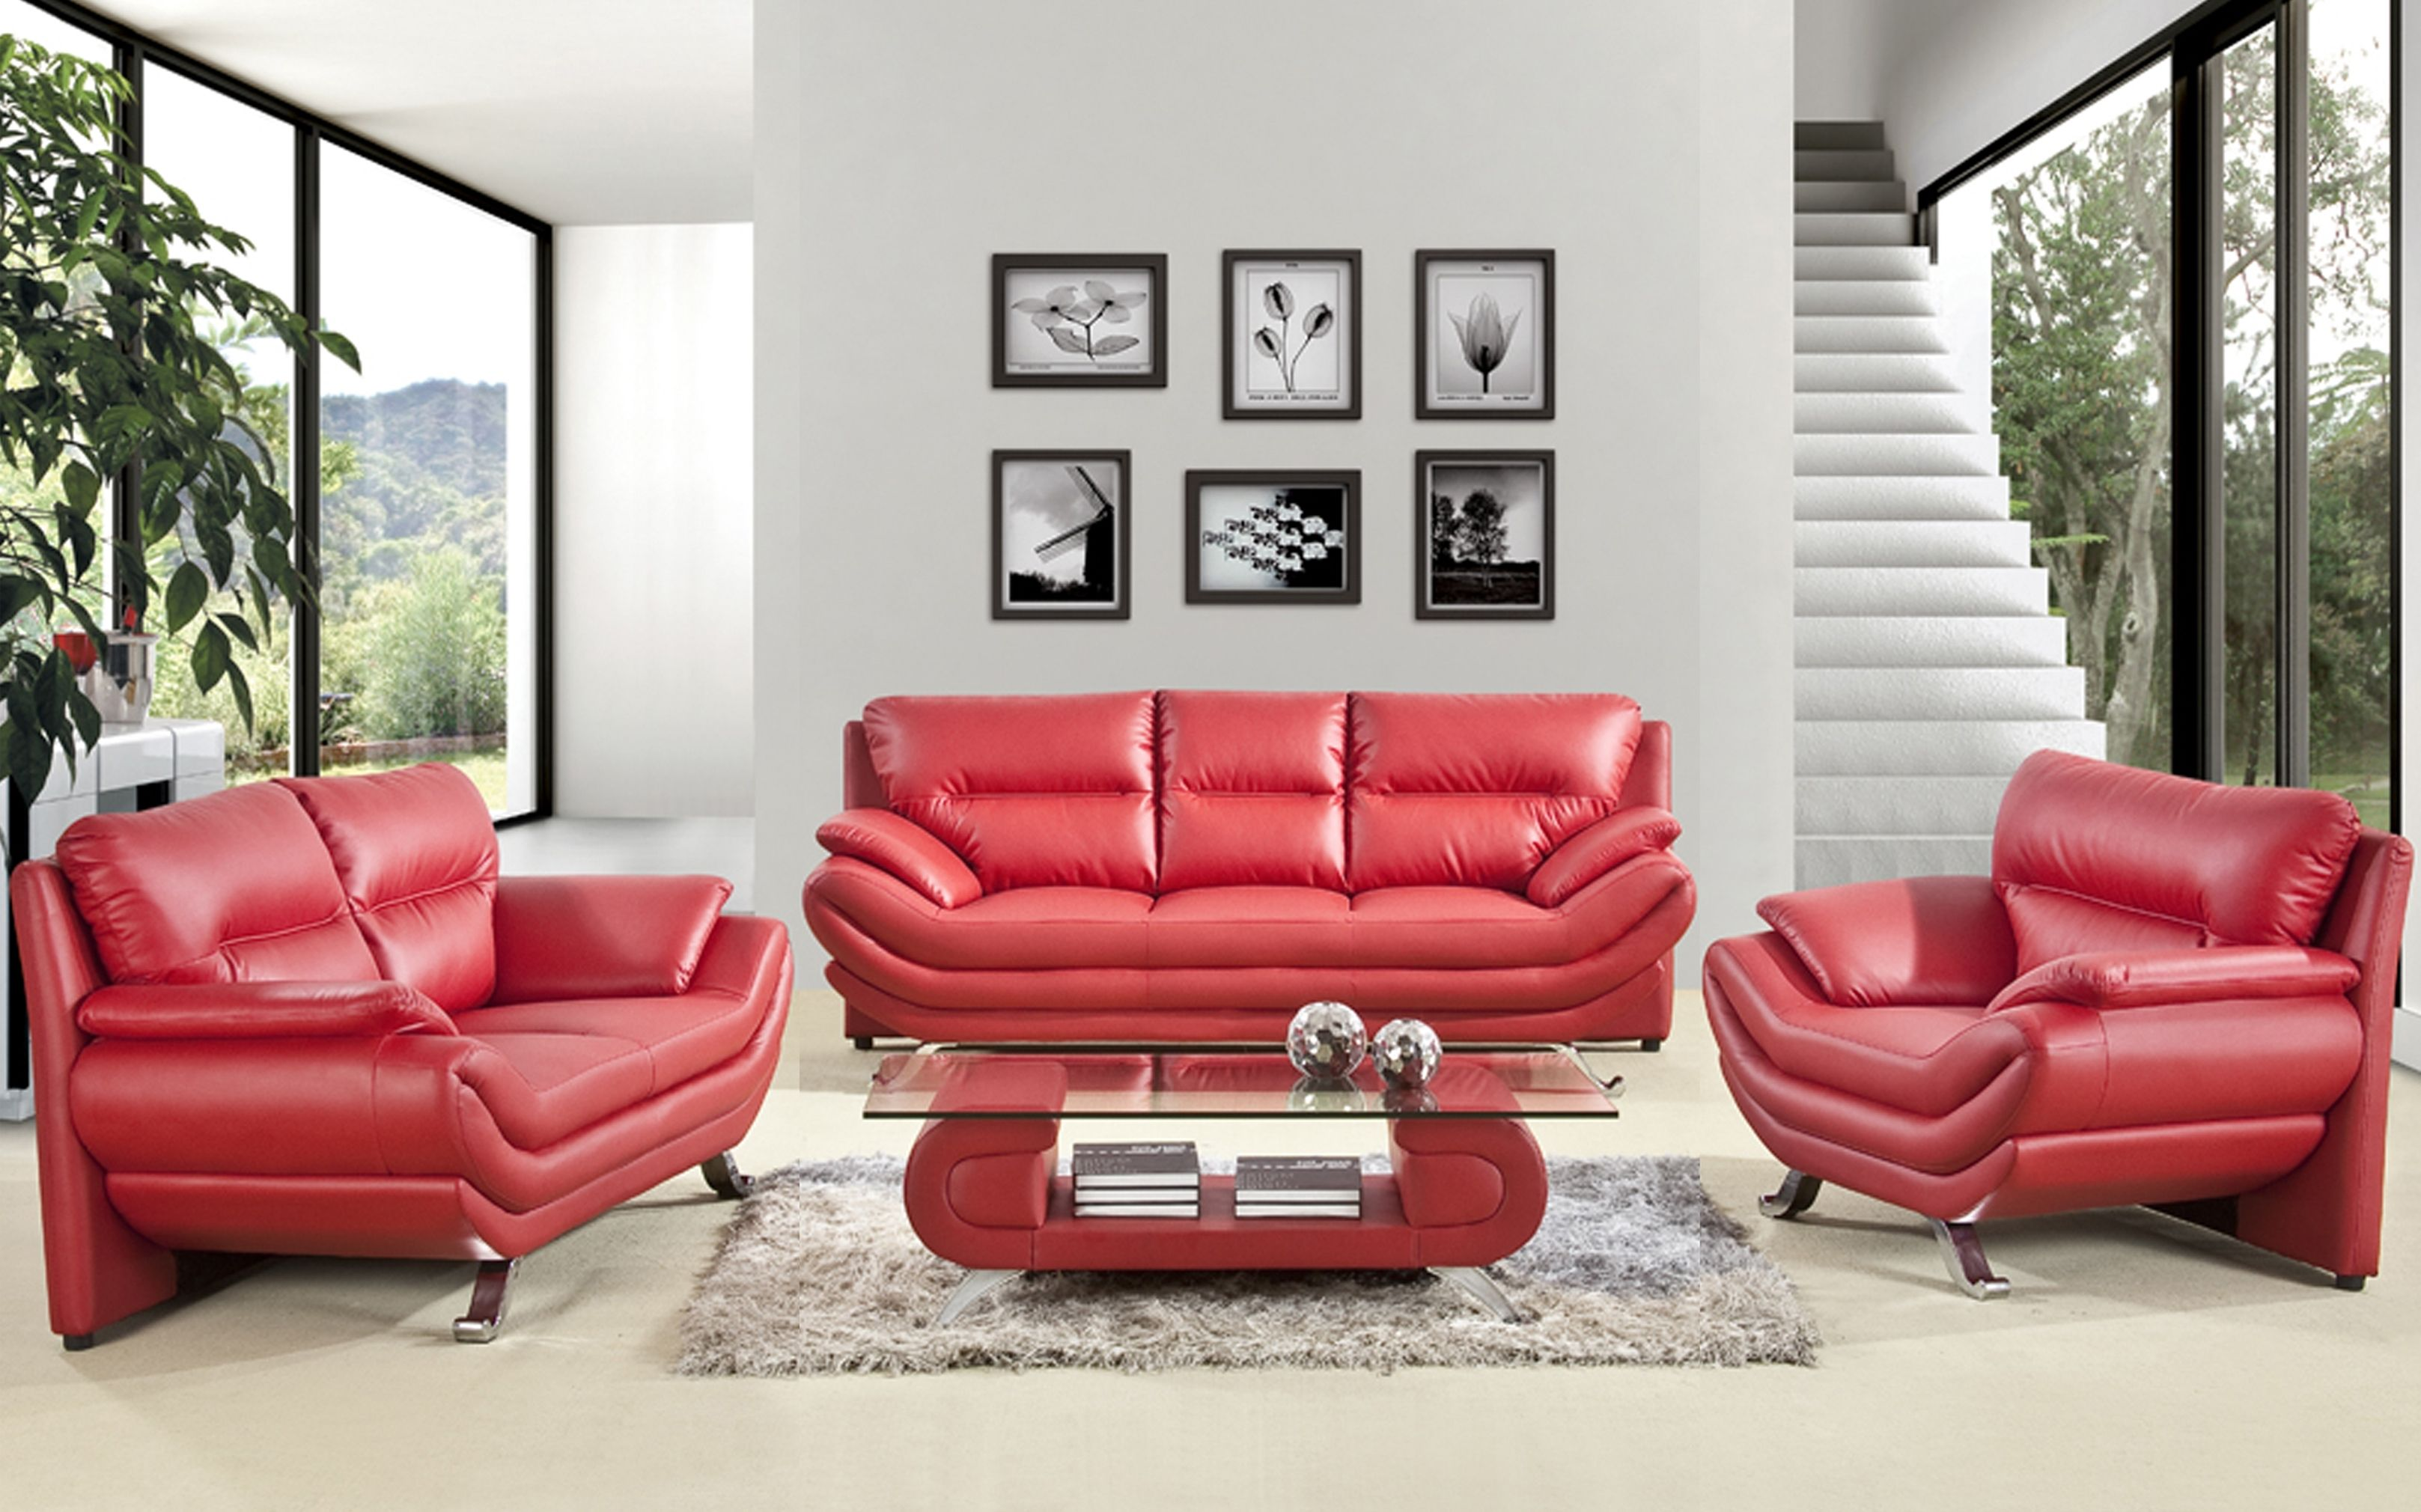 Gallery Of Red Leather Couches For Living Room View 11 20 Photos Red Leather Couch Living Room Leather Couches Living Room Red Leather Sofa Living Room